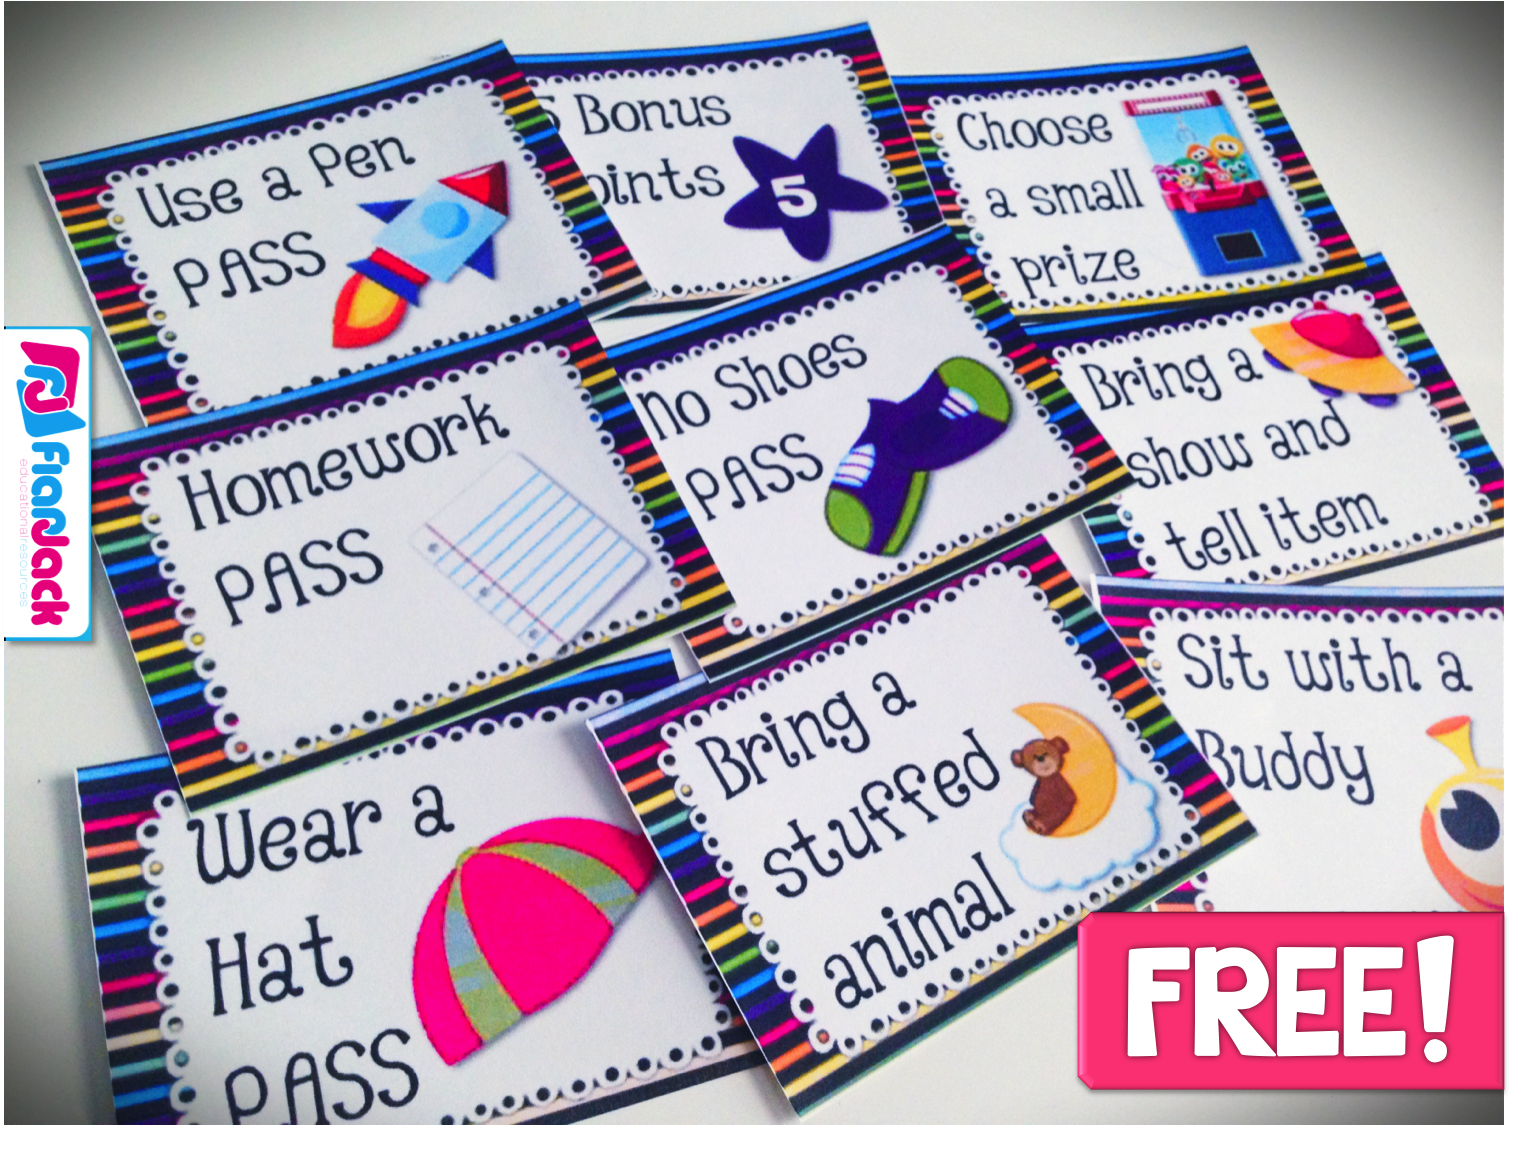 Classroom Decoration Freebies ~ Space behavior coupons freebie ideas classroom decor pack